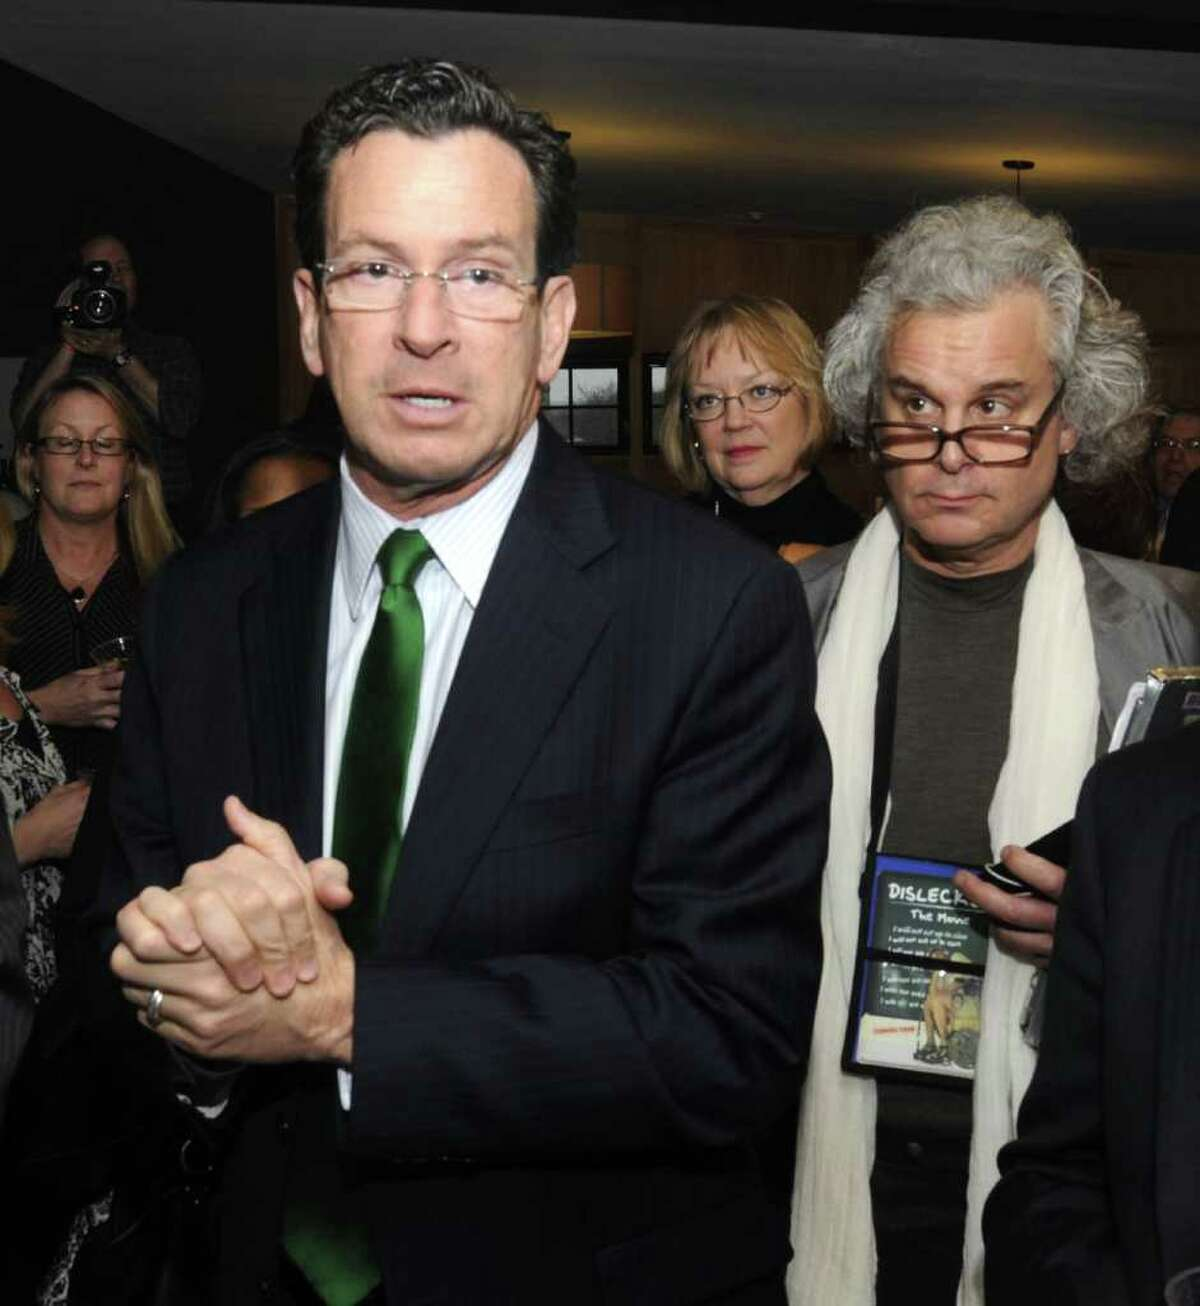 Connecticut Governor Dannel Malloy, left, talks about his dyslexia, during a pre-party for the opening of the 4th Annual Connecticut Film Festival, in Danbury, on Wednesday, April 6, 2011. Harvey Hubble V, right, is the producer of